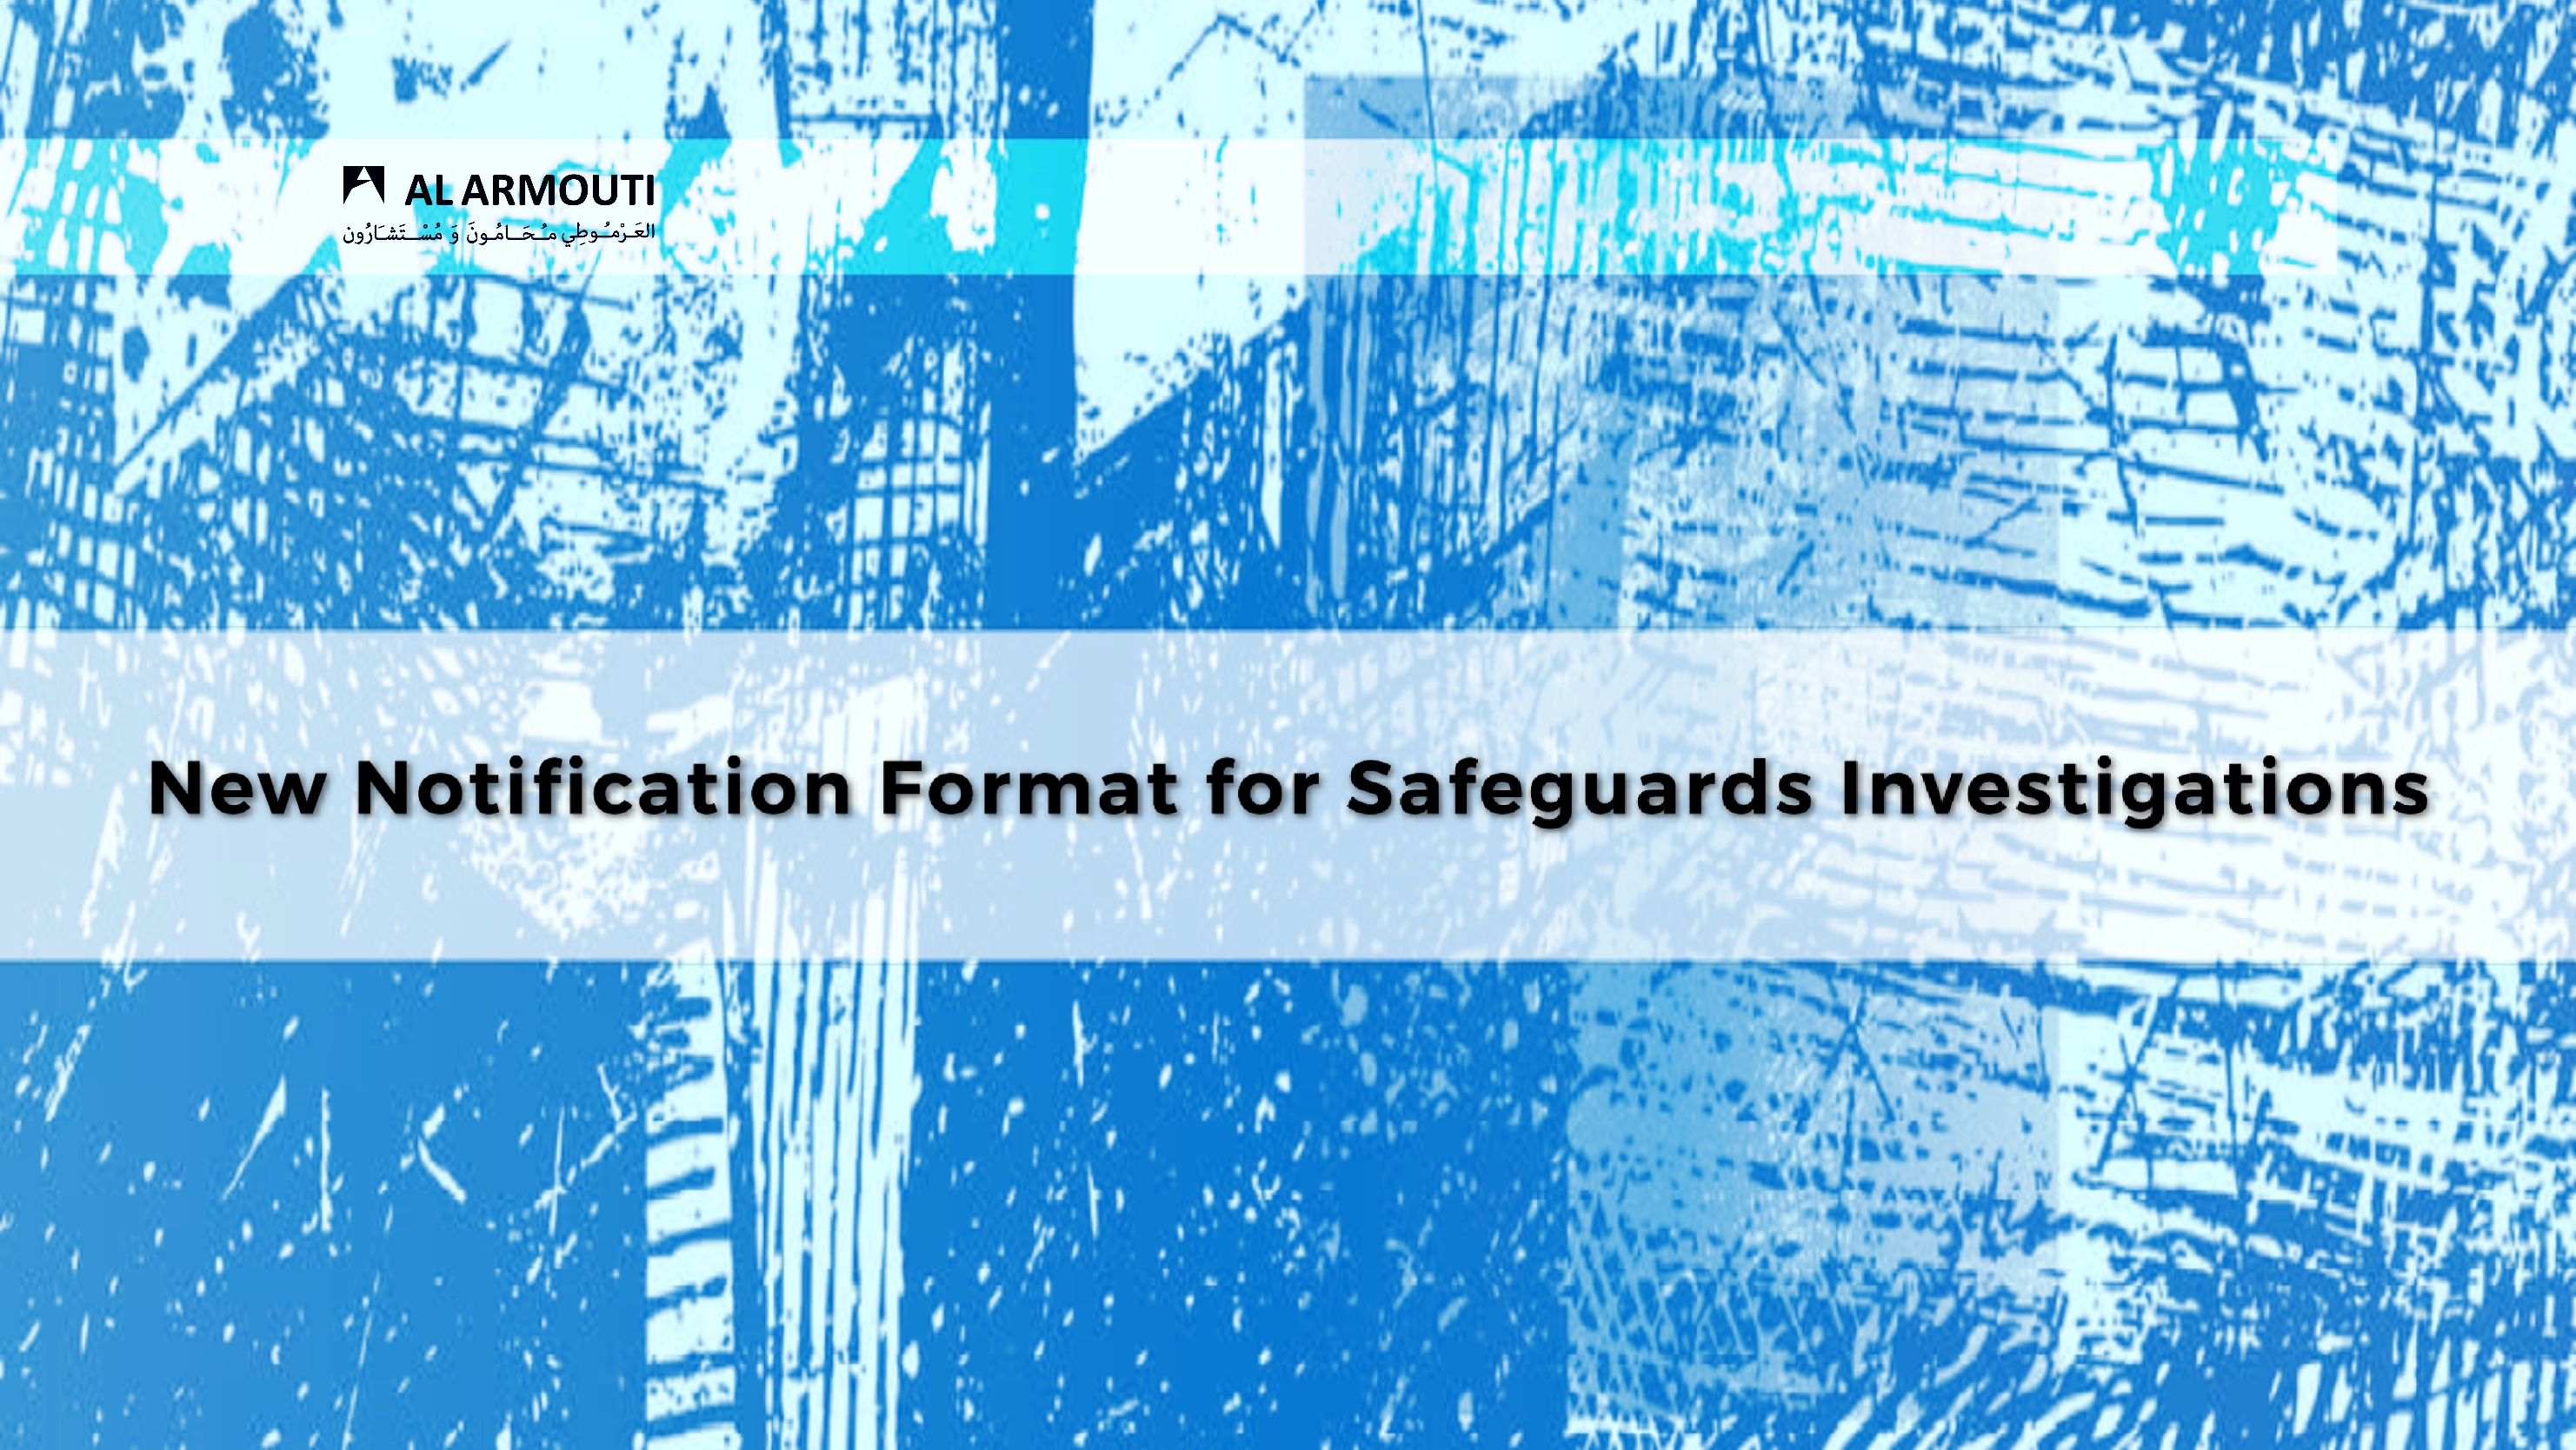 New Notification Formats for Safeguards Investigations